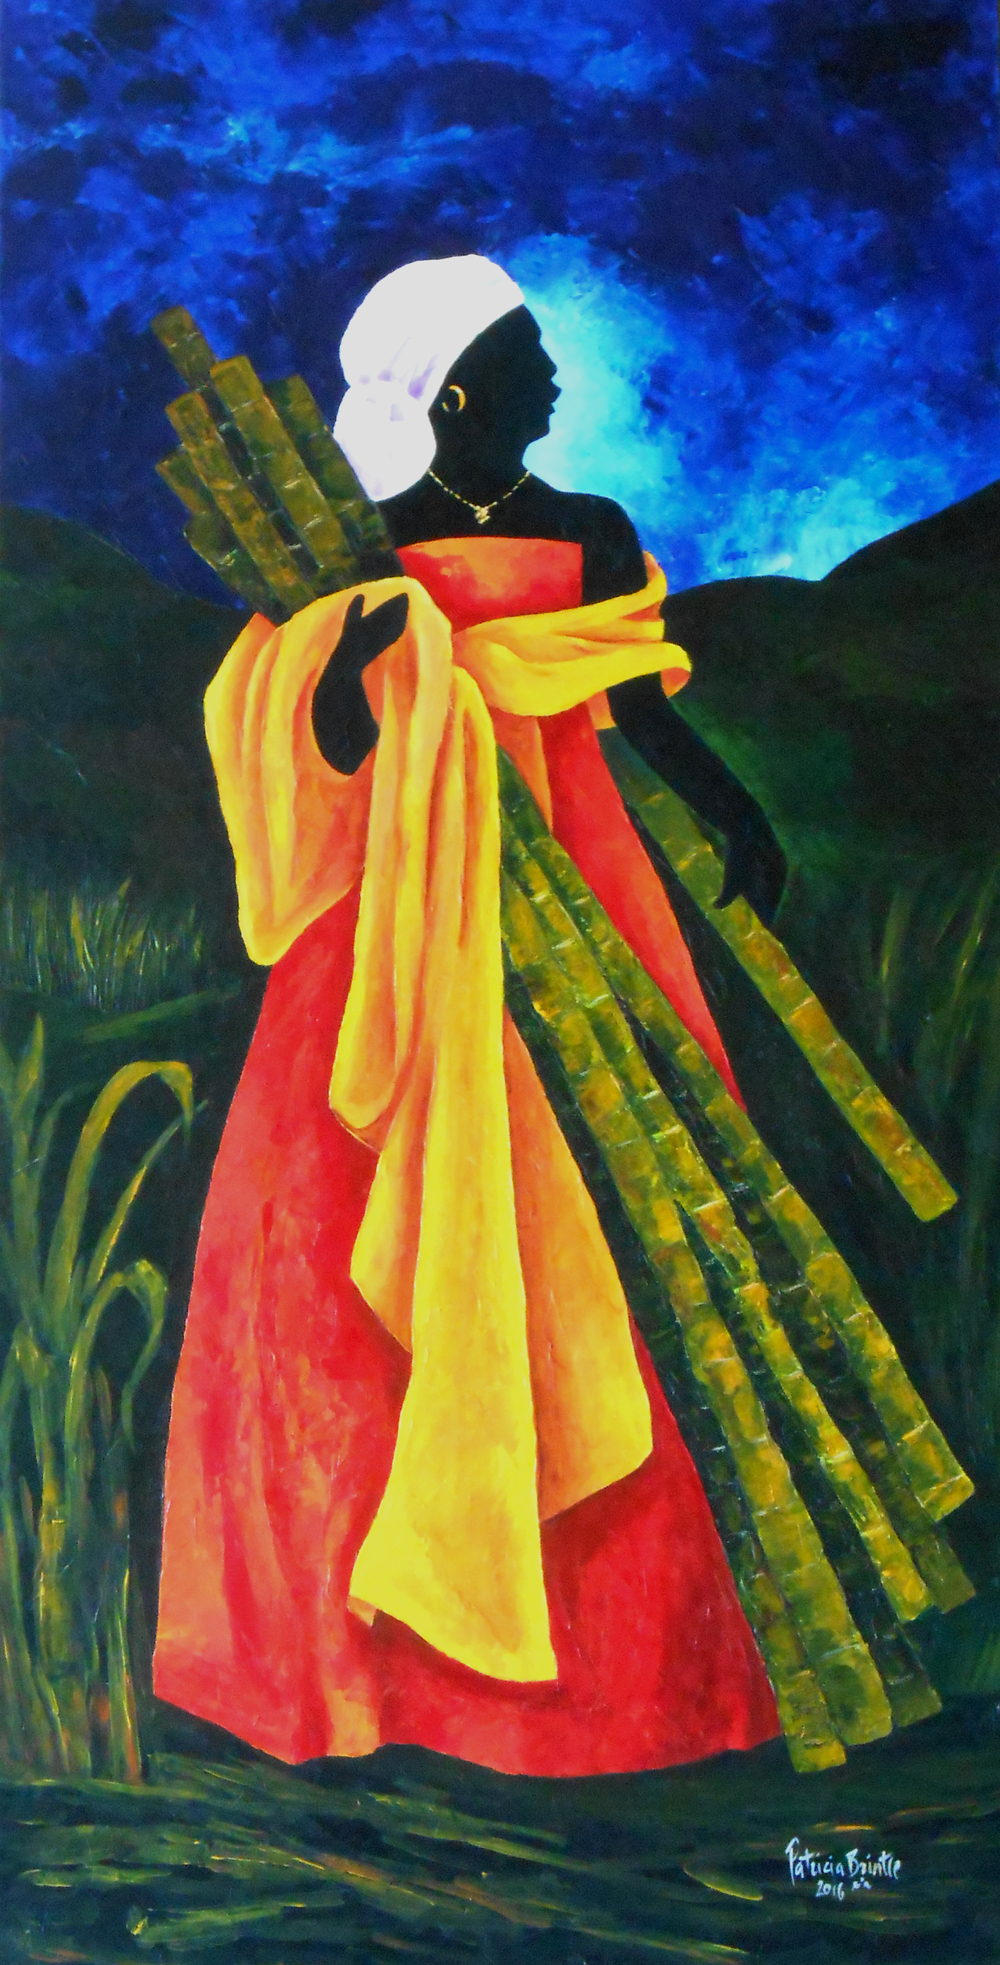 27 - Season Sugarcane I by Patricia Brintle